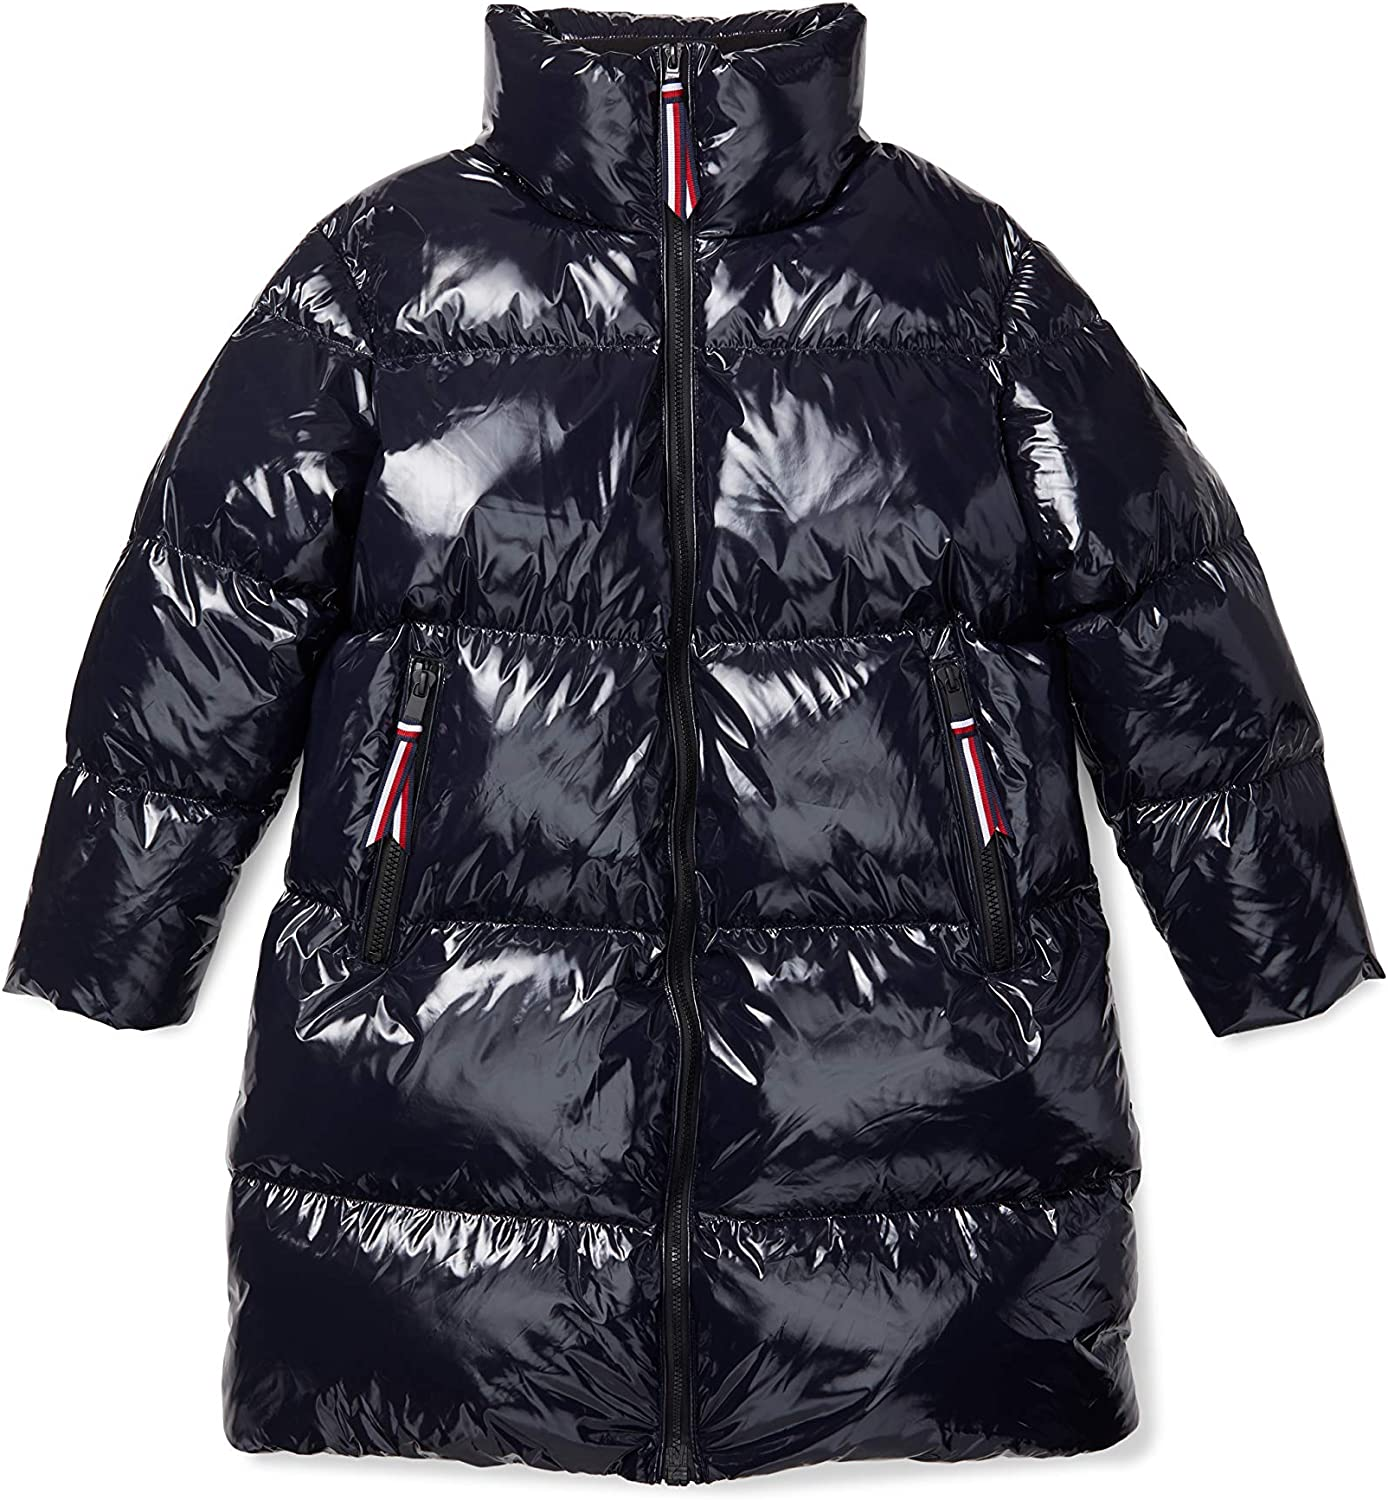 Tommy Hilfiger Women's Adaptive Icon Gifts Gloss Puffer Coat Down High Directly managed store